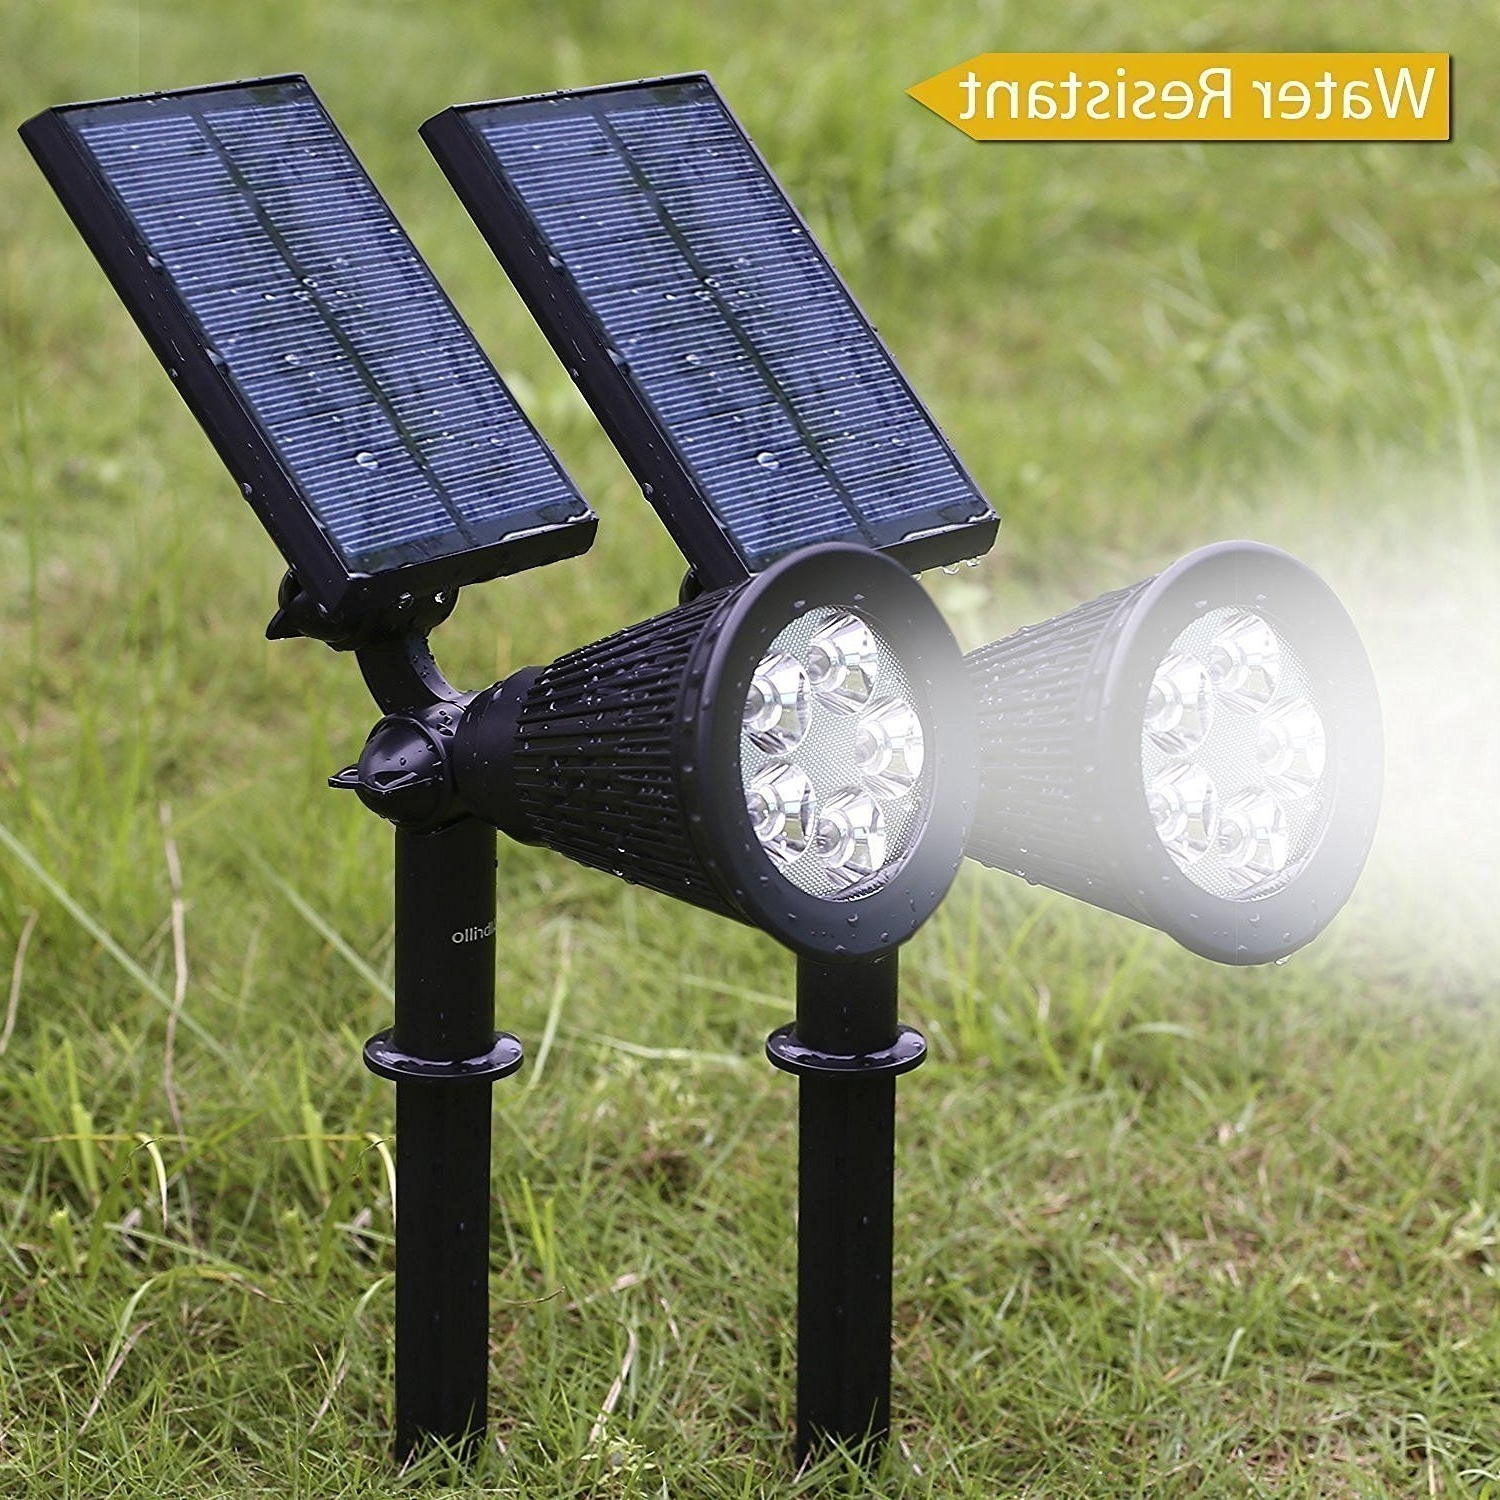 Best And Newest Outdoor Lights Amazon Best Of Albrillo 5 Led Solar Powered Spotlight For Outdoor Lanterns At Amazon (View 5 of 20)